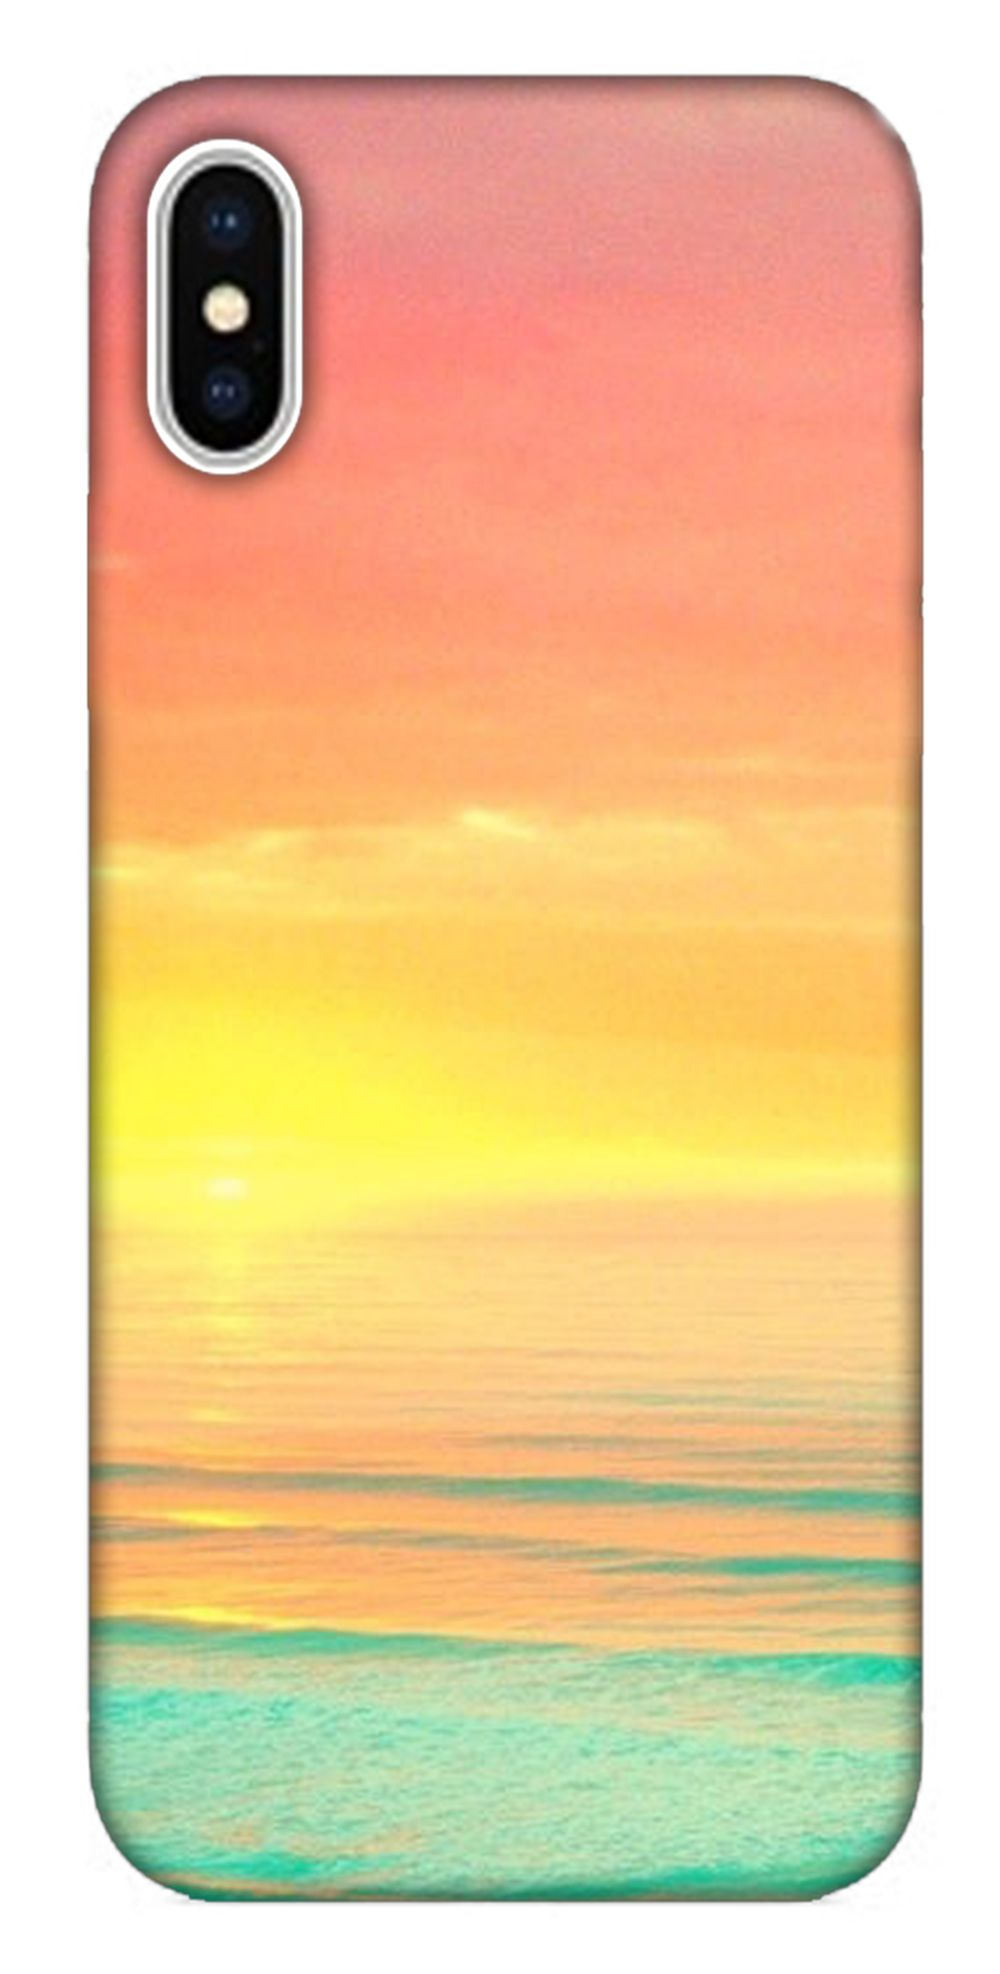 25 Cutest Iphone X Wallpaper Case Cover Ever Beautiful Sunset